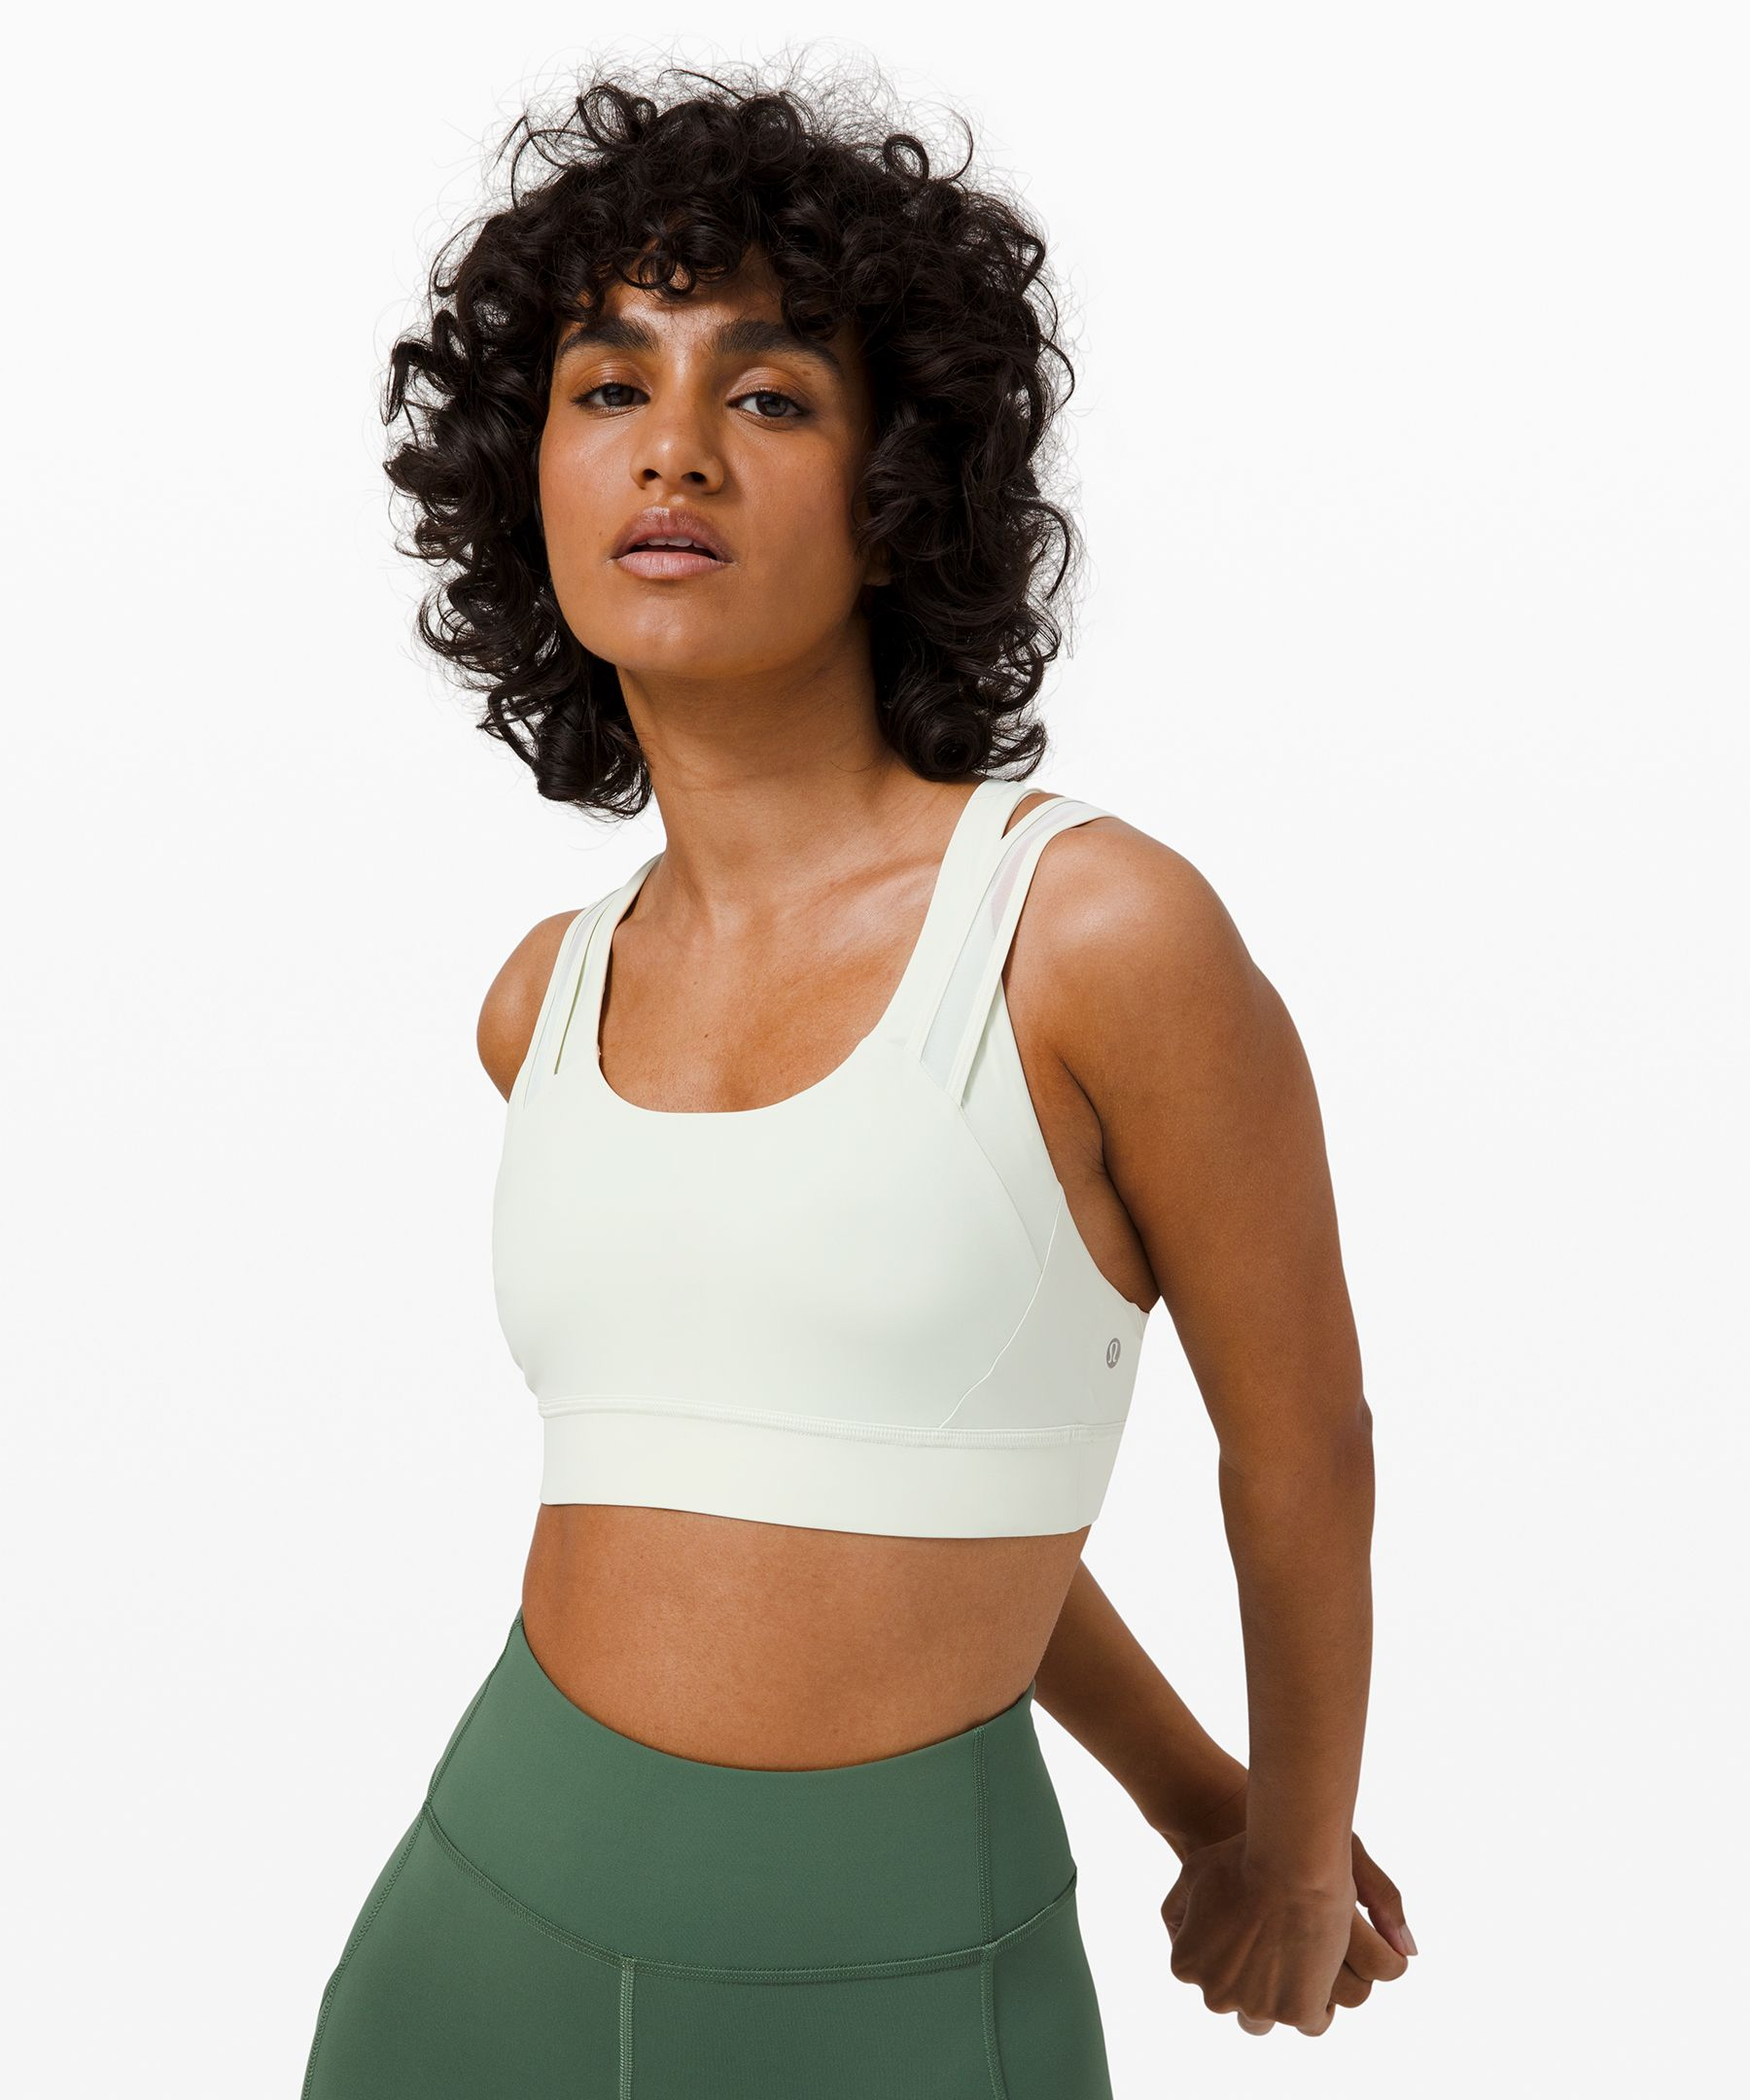 You don\\\'t have to choose  between style and performance  for your workout. This bra  features Mesh fabric panels  that give your look an edge  while allowing airflow as you  work up a sweat.